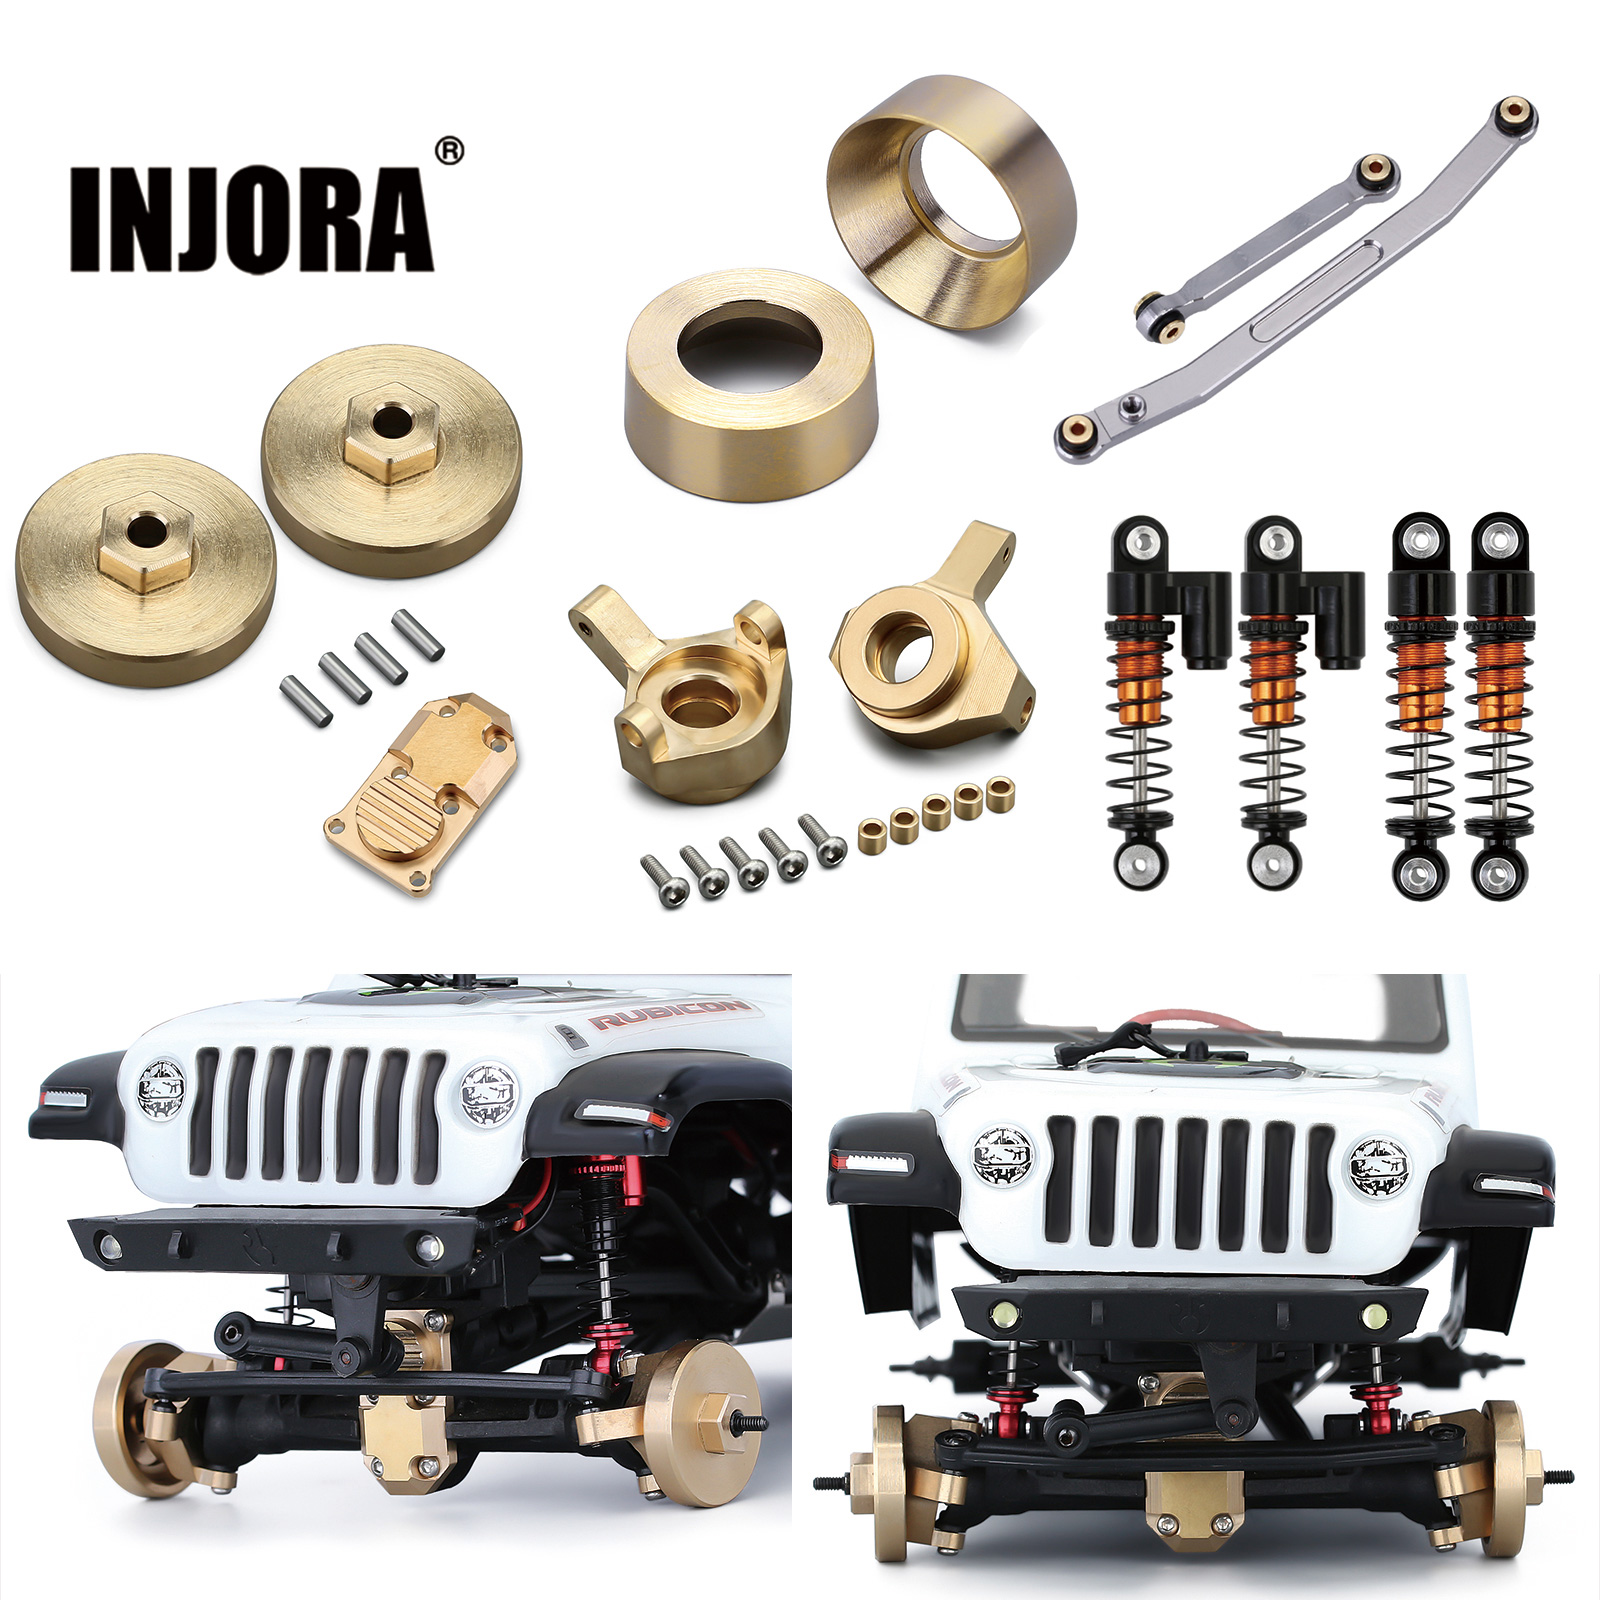 INJORA Brass Counterweight Steering Knuckles Wheel Hex Shock Absorber For 1/24 RC Crawler Car Axial SCX24 90081 Upgrade Parts